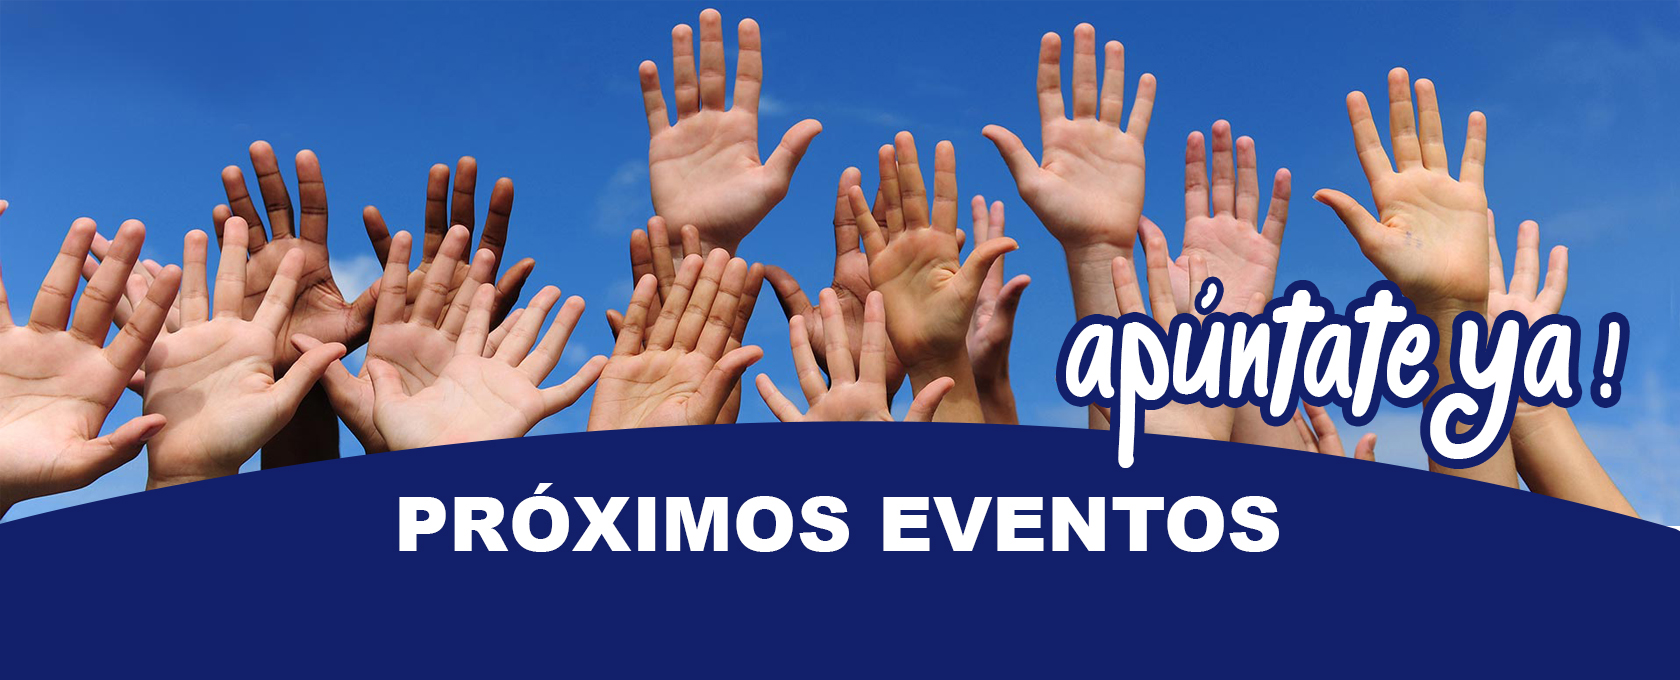 eventos voluntariado-banner